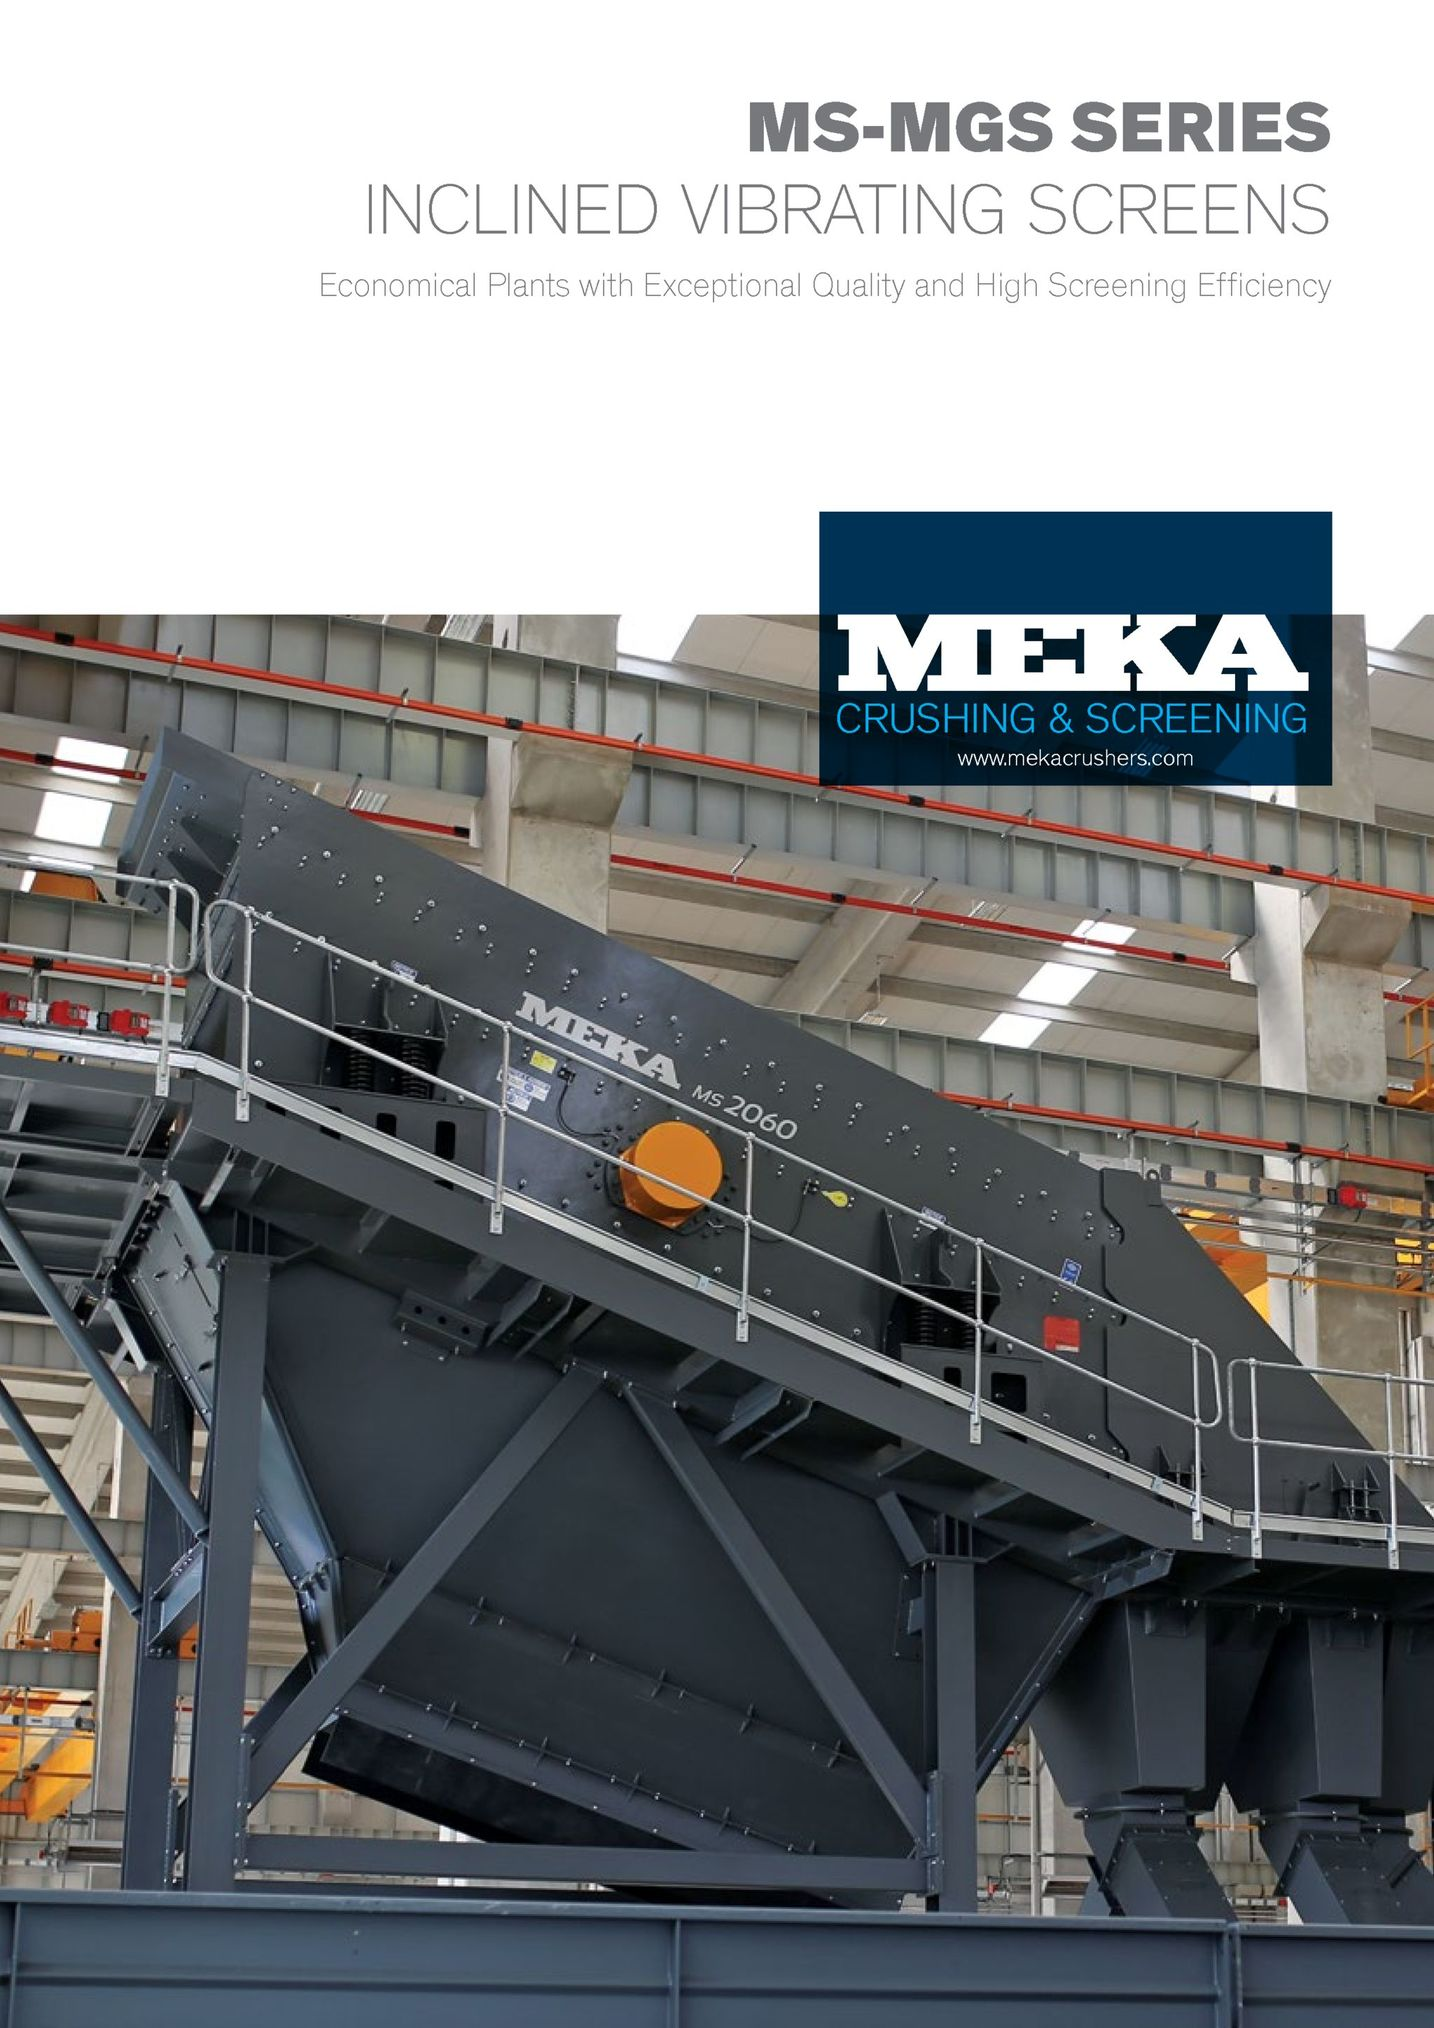 ms-mgs series inclined vibrating screens economical plants with exceptional quality and high screening efficiency crushing& screening www.mekacrushers.comm